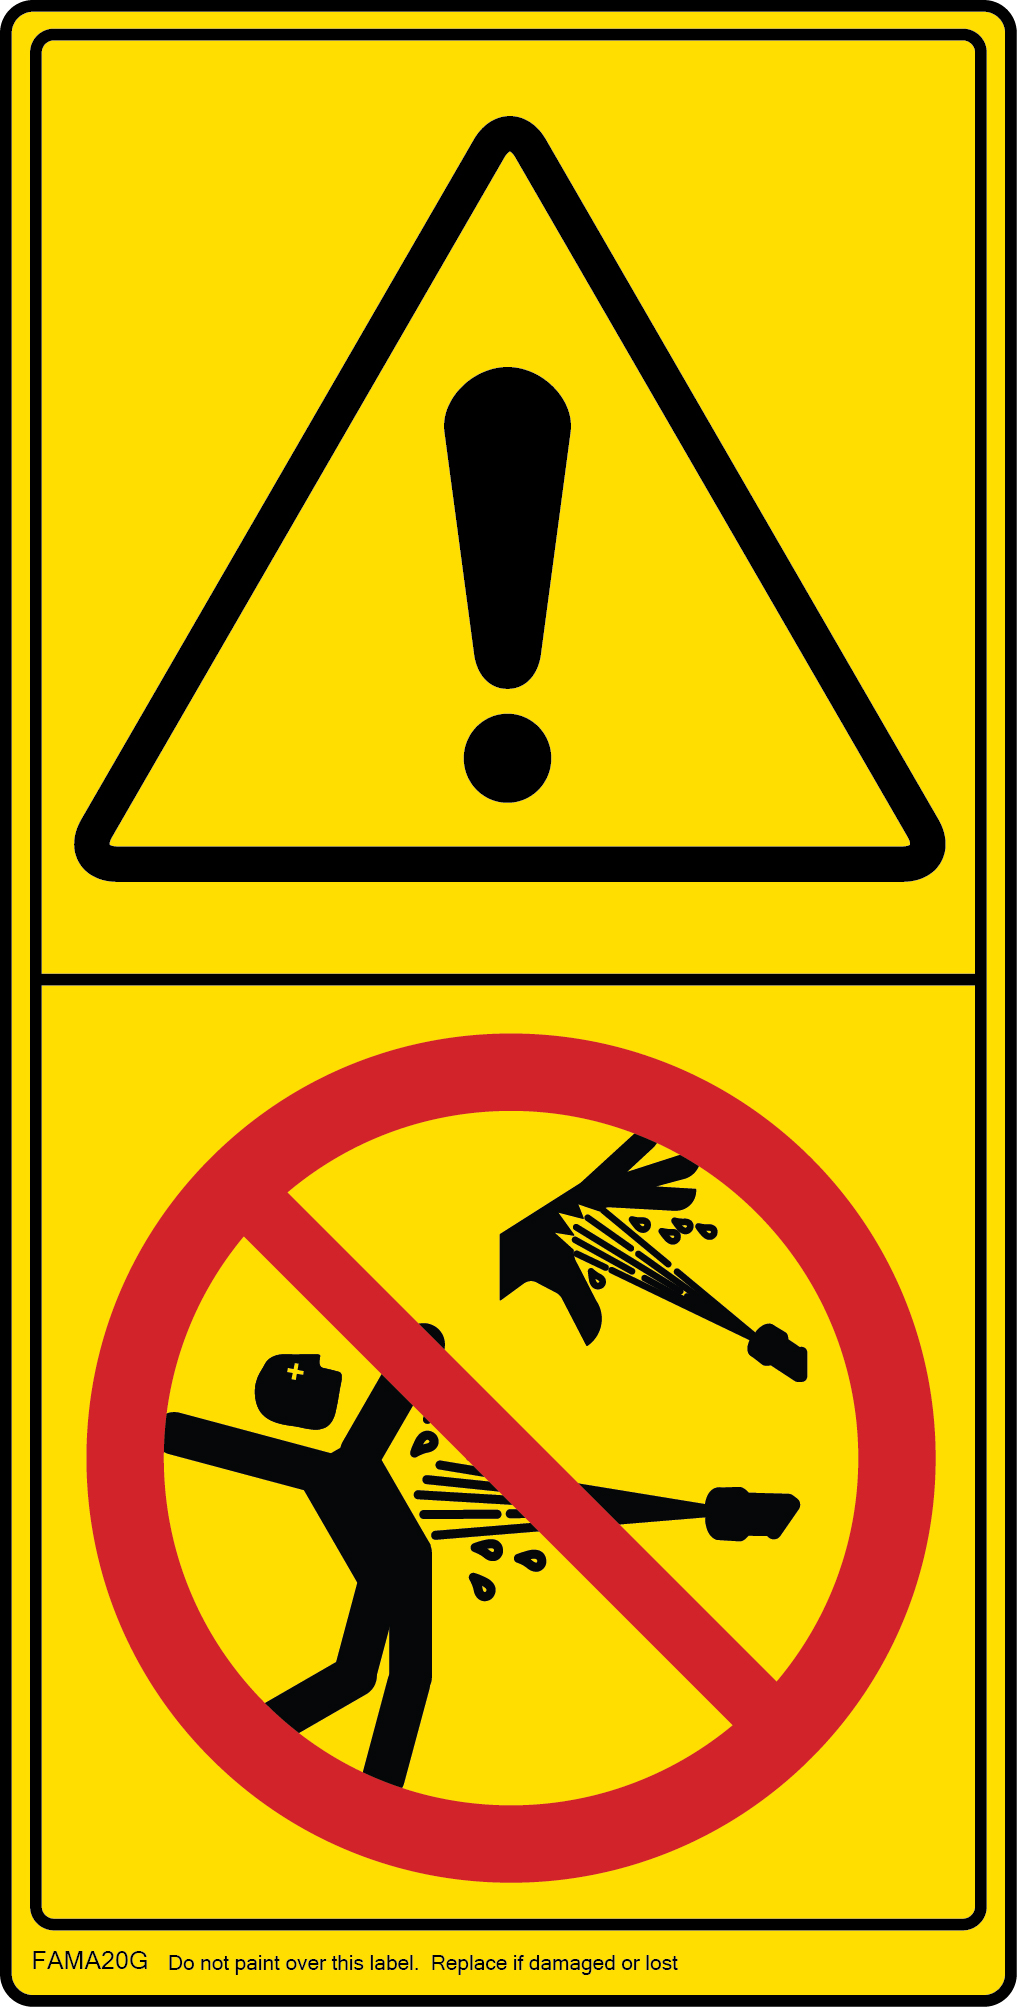 Electronic Stability Control >> SAFETY SIGN ARTWORK – FAMA